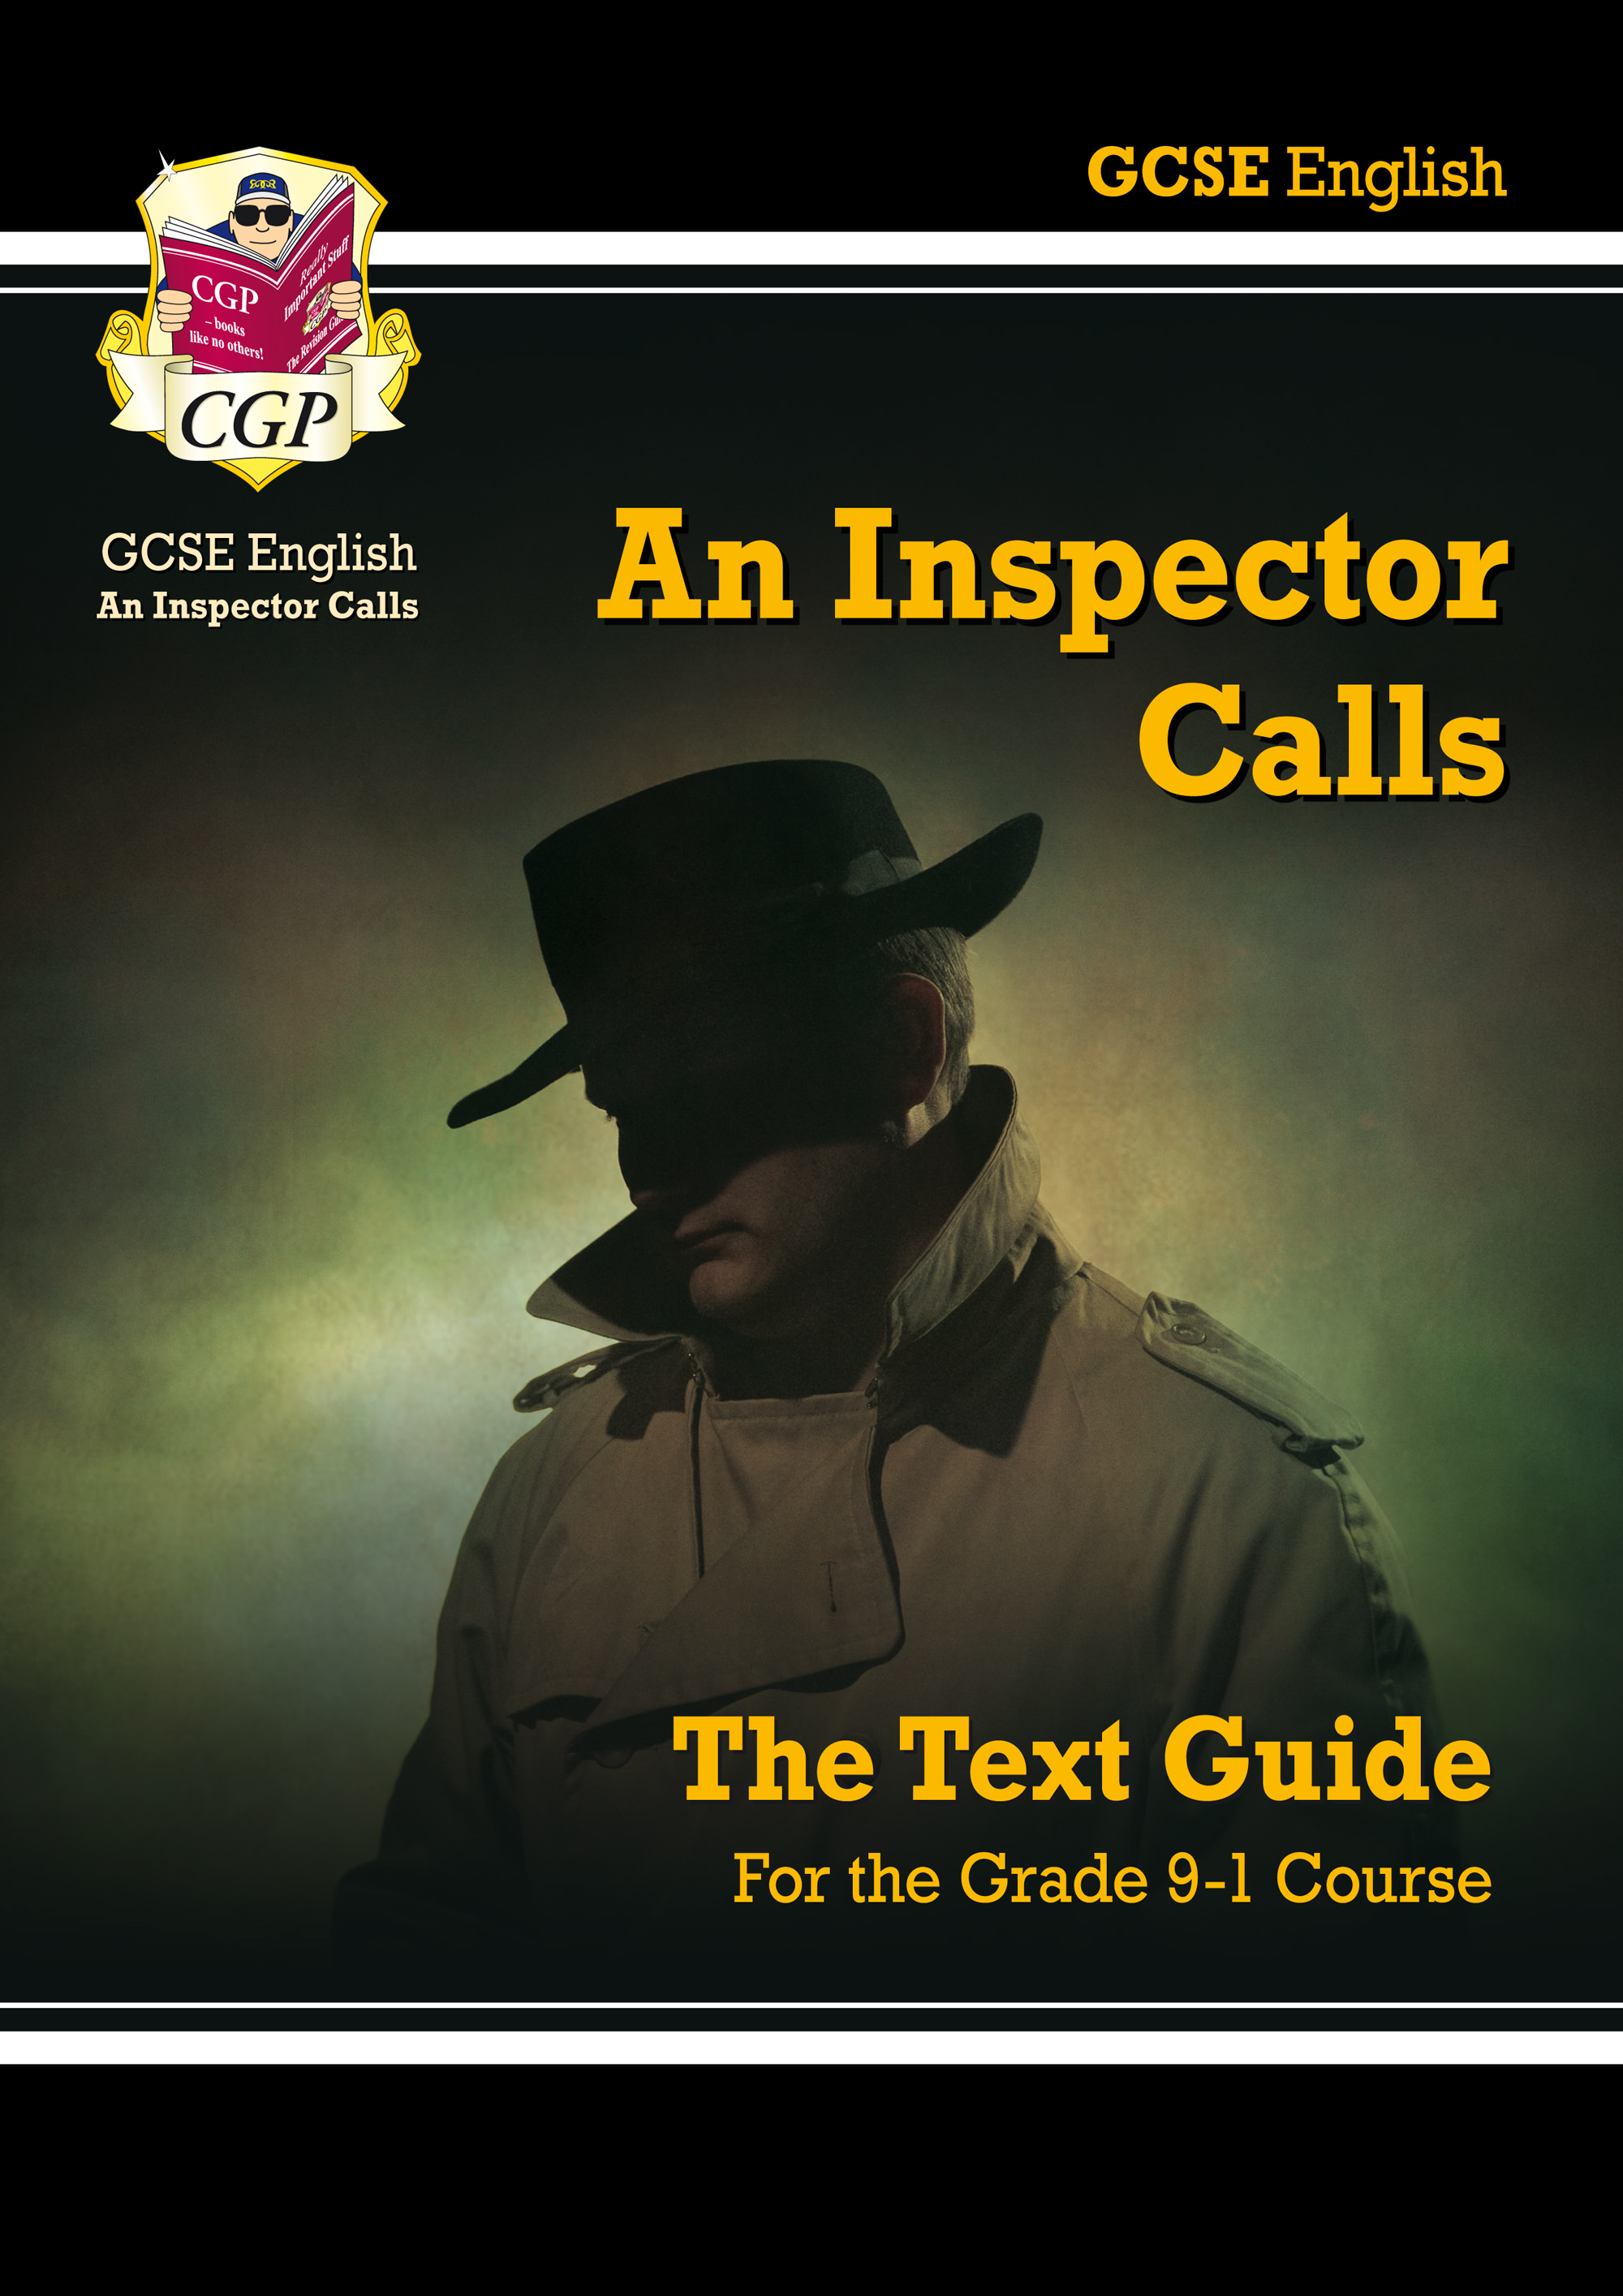 ETI44 - Grade 9-1 GCSE English Text Guide - An Inspector Calls